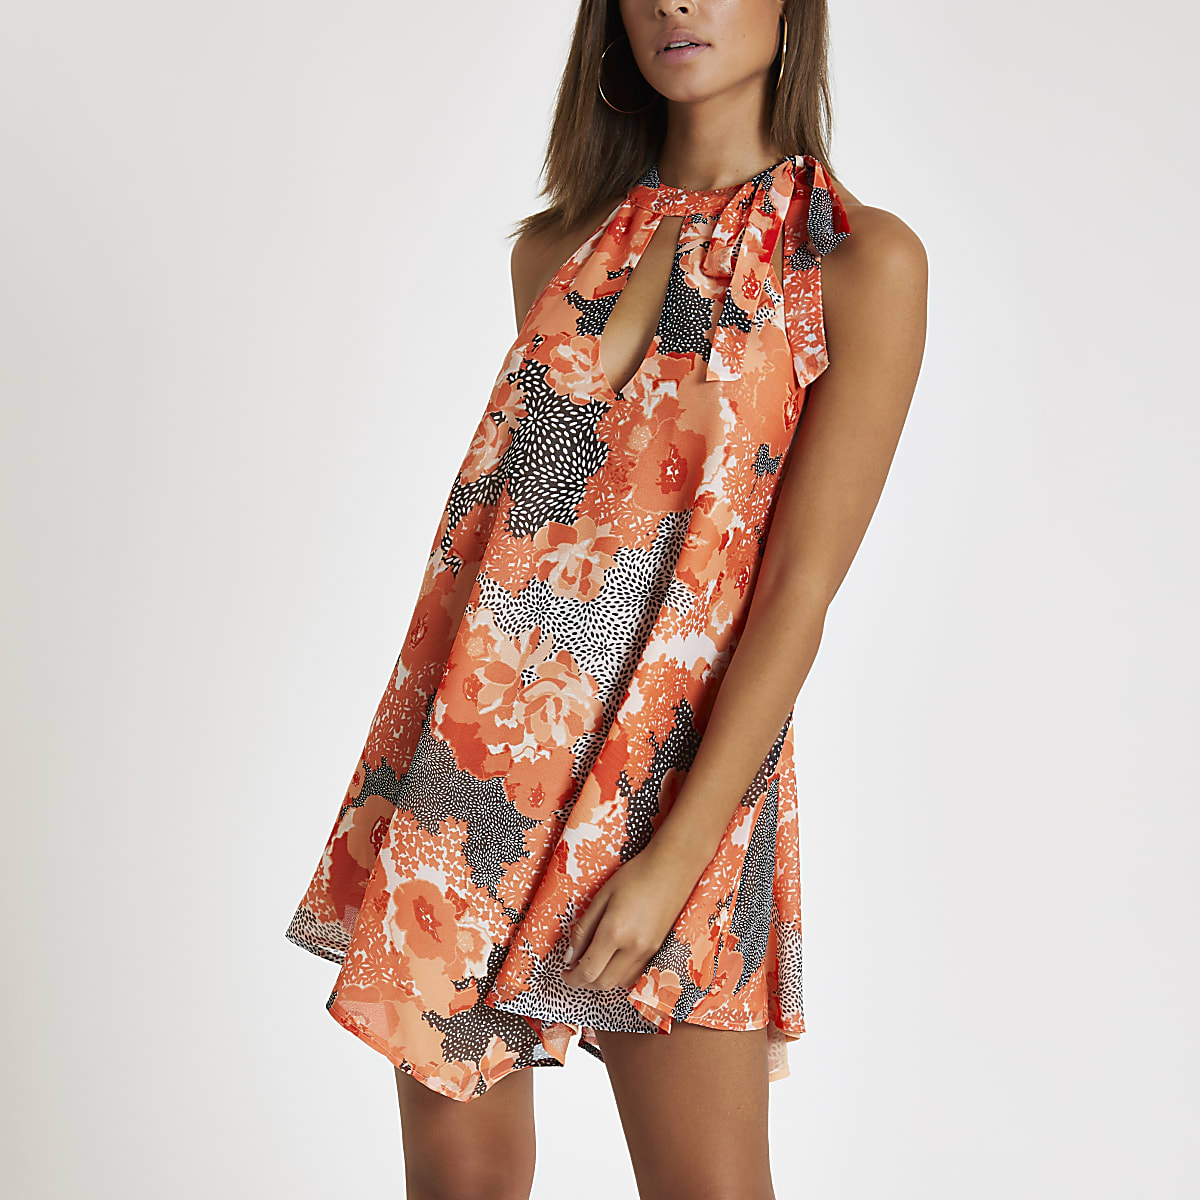 Coral floral halter neck beach dress